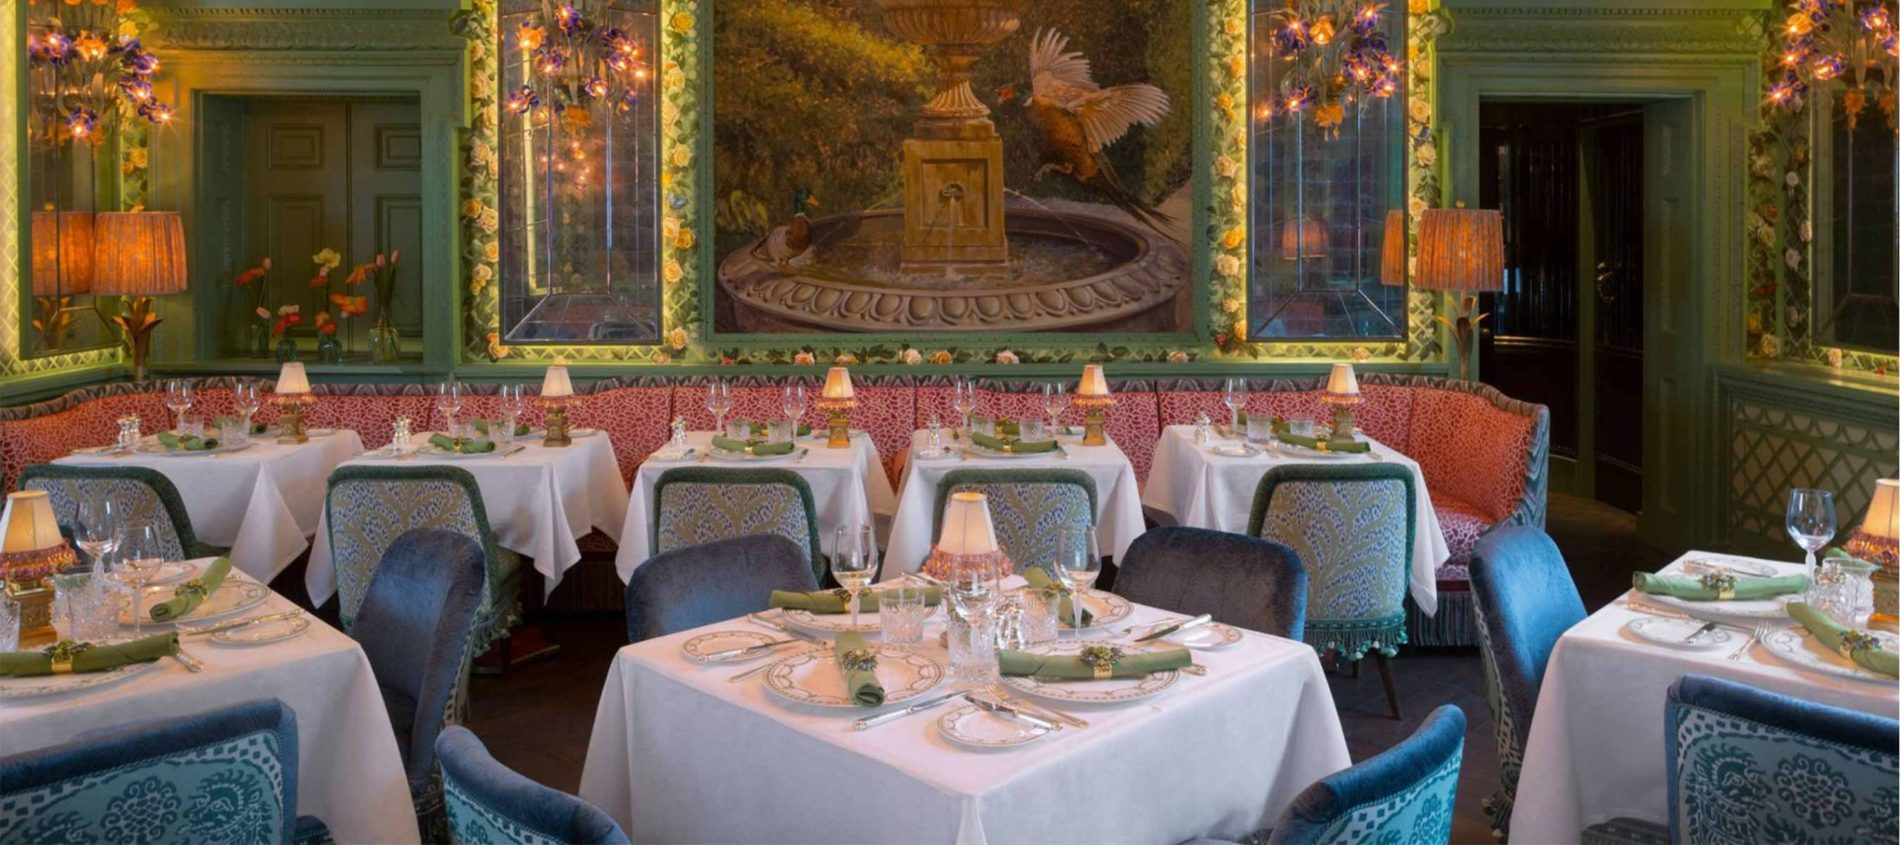 Annabel's Restaurant with blue chairs and large wall mural